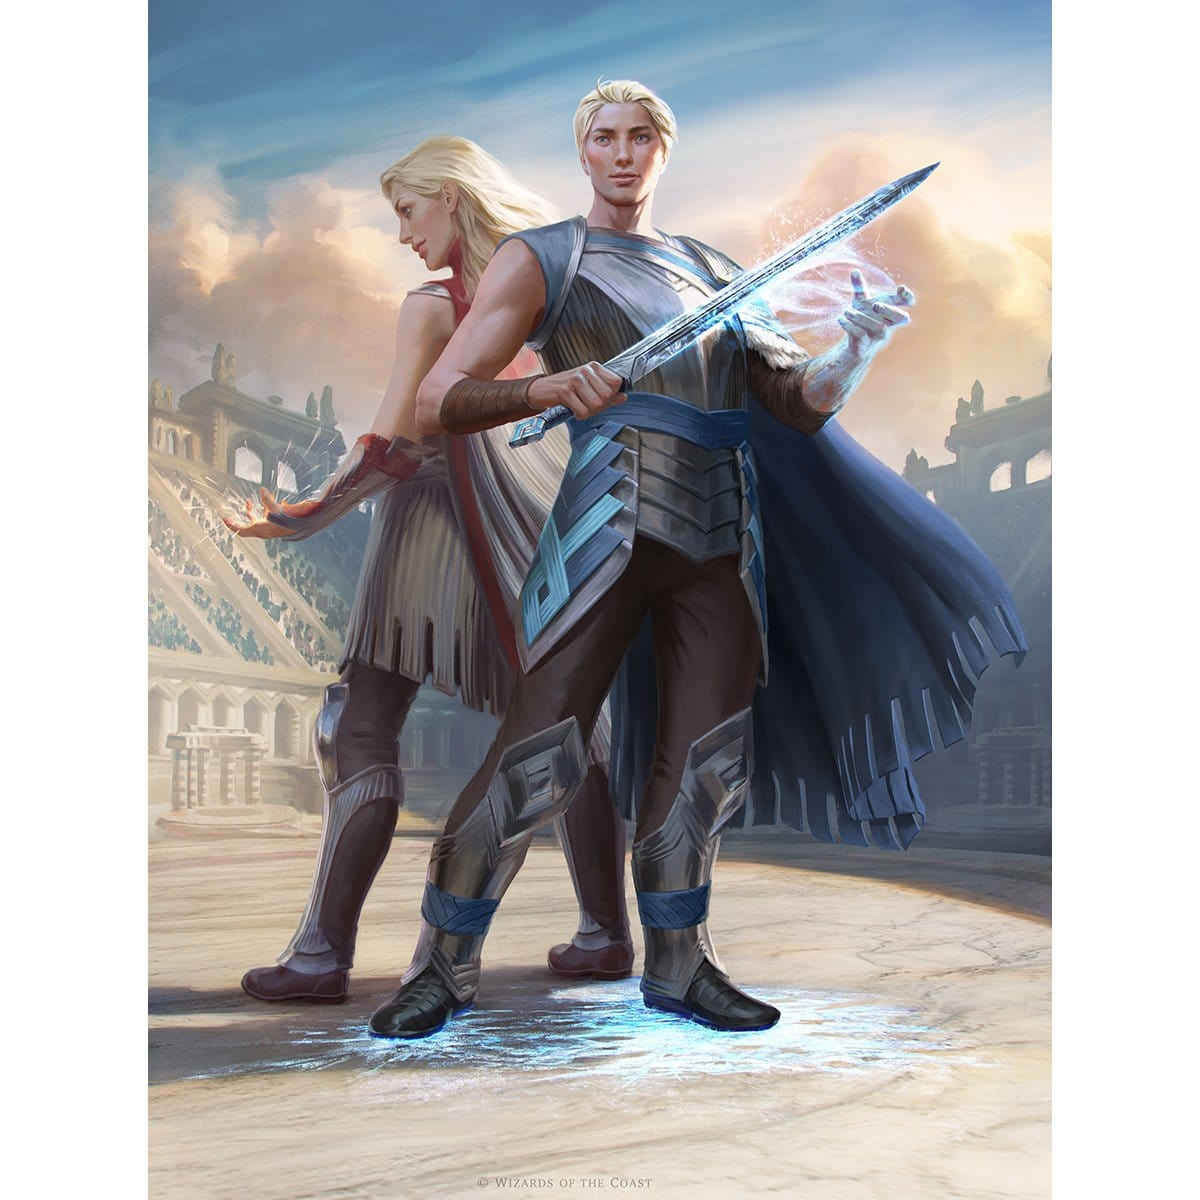 Will Kenrith Print - Print - Original Magic Art - Accessories for Magic the Gathering and other card games